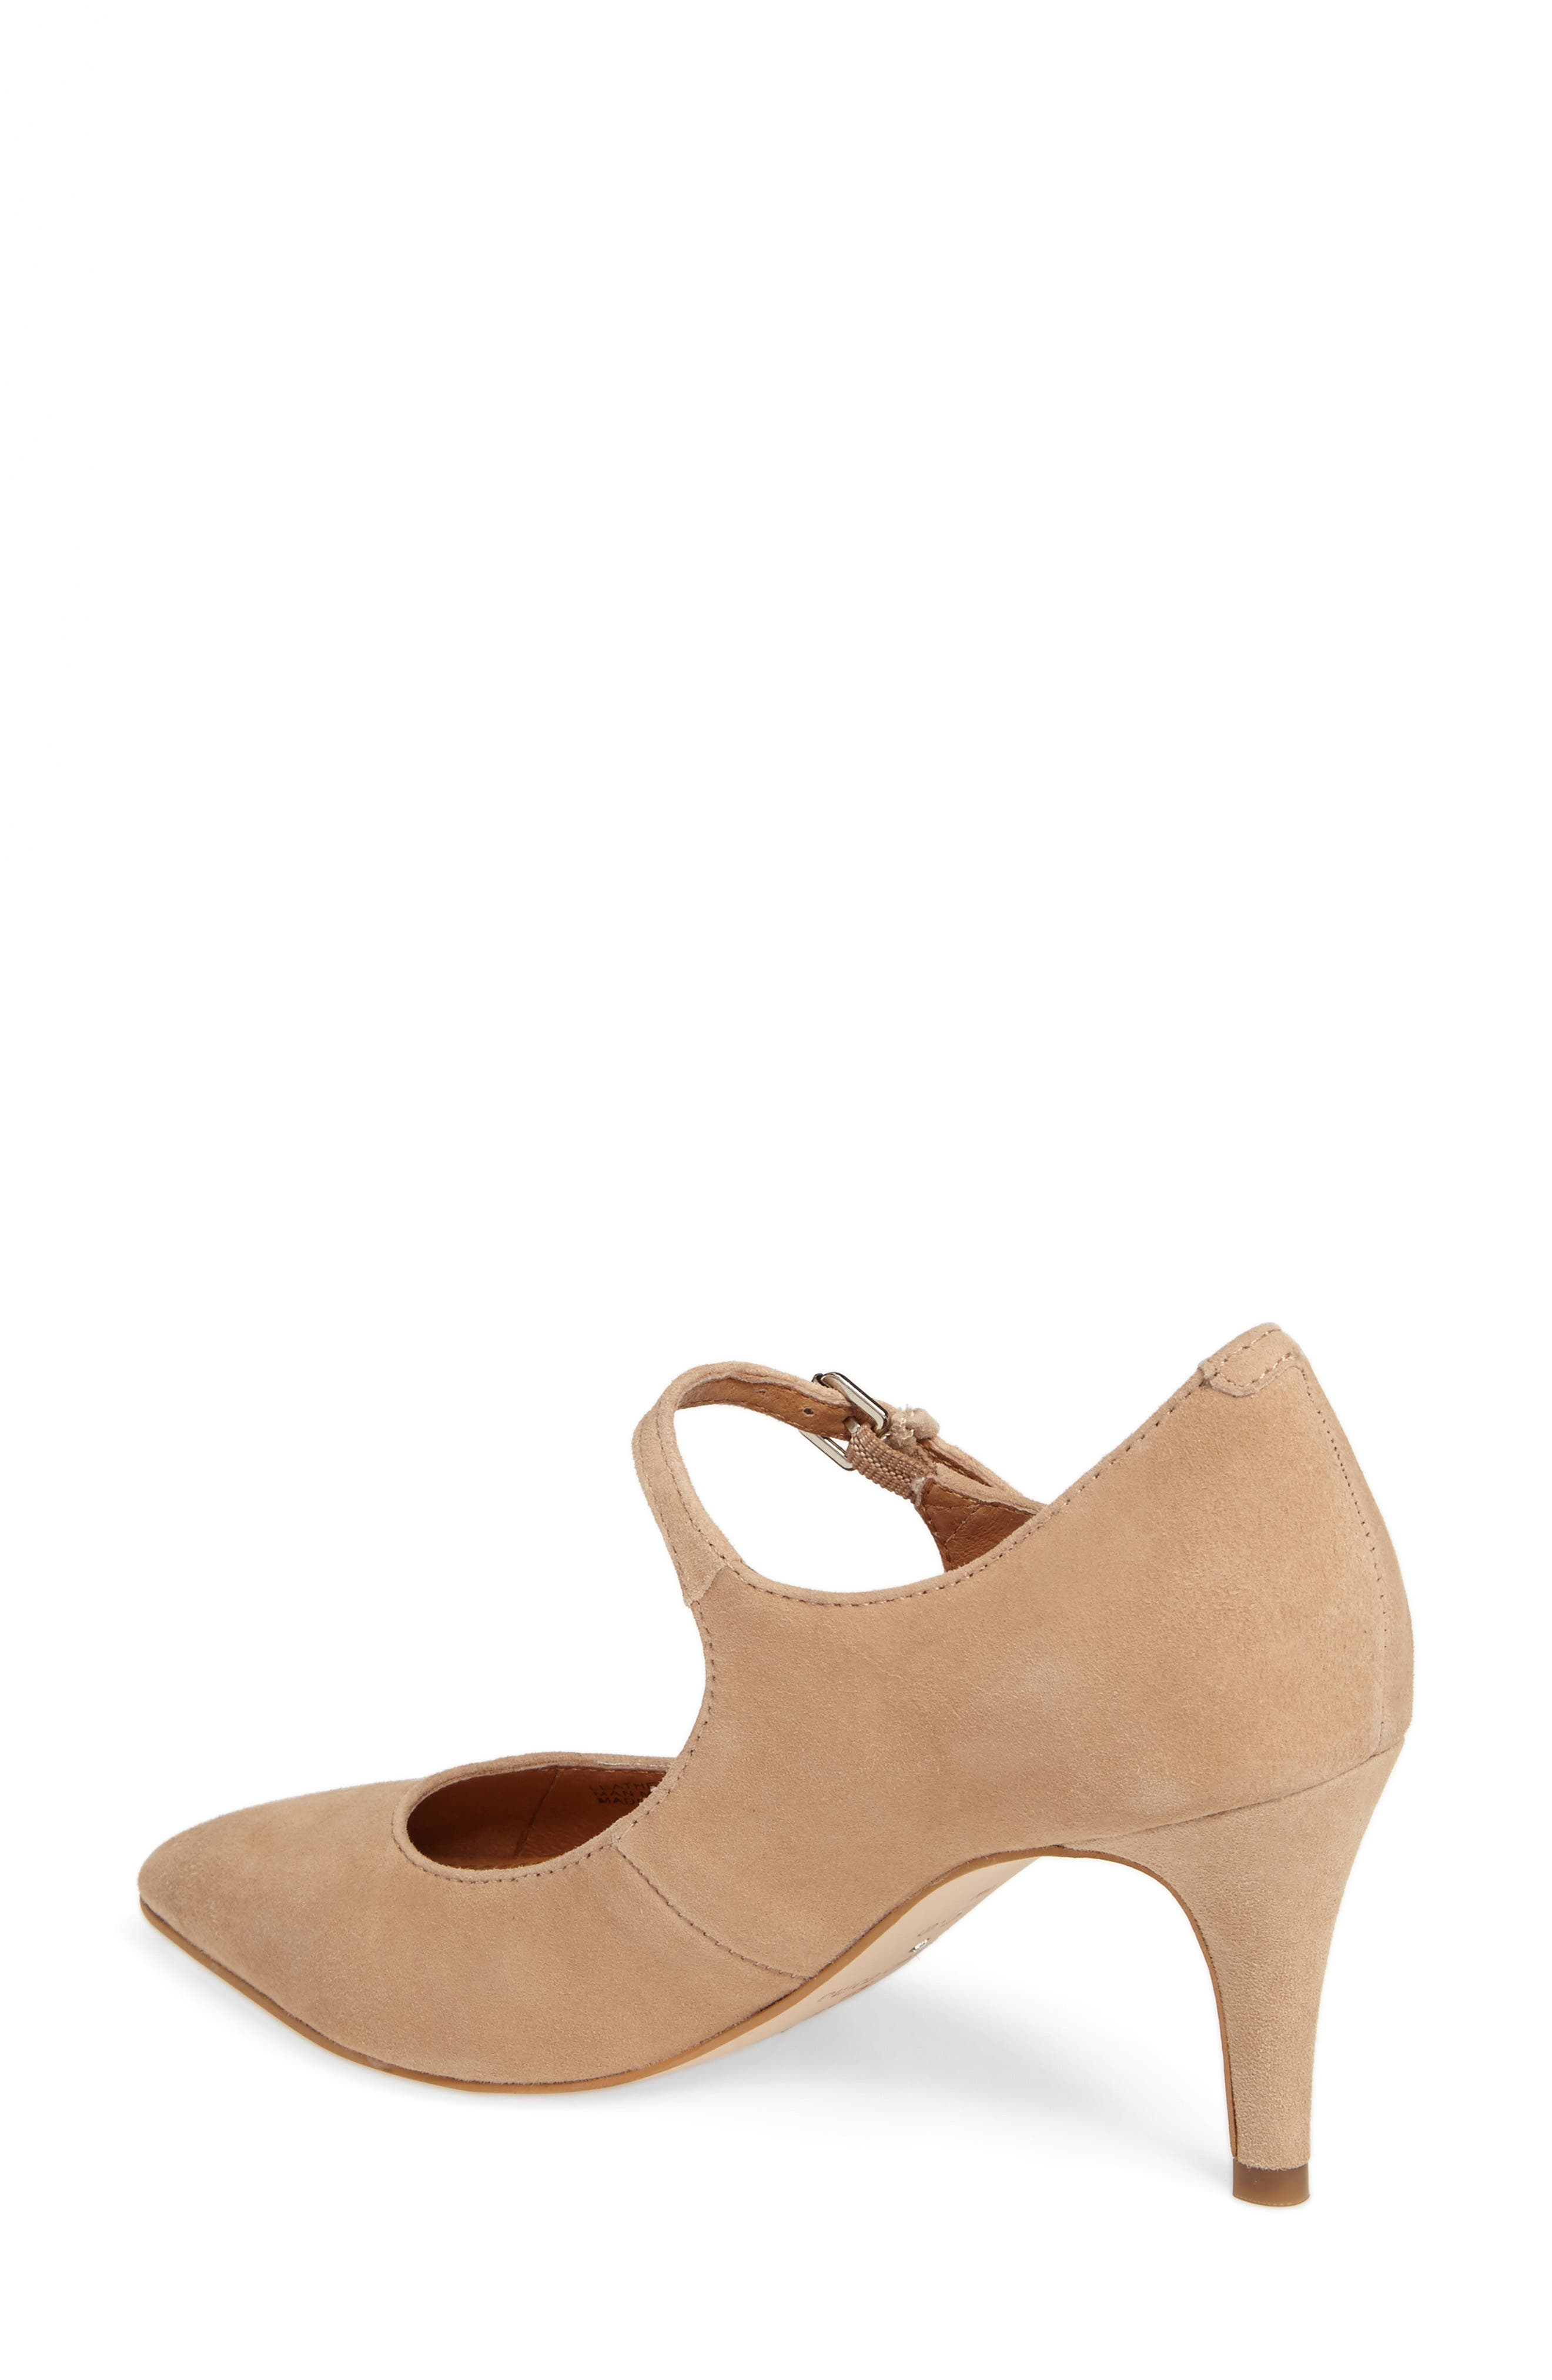 Coy Pointy Toe Pump,                             Alternate thumbnail 2, color,                             Dark Nude Suede